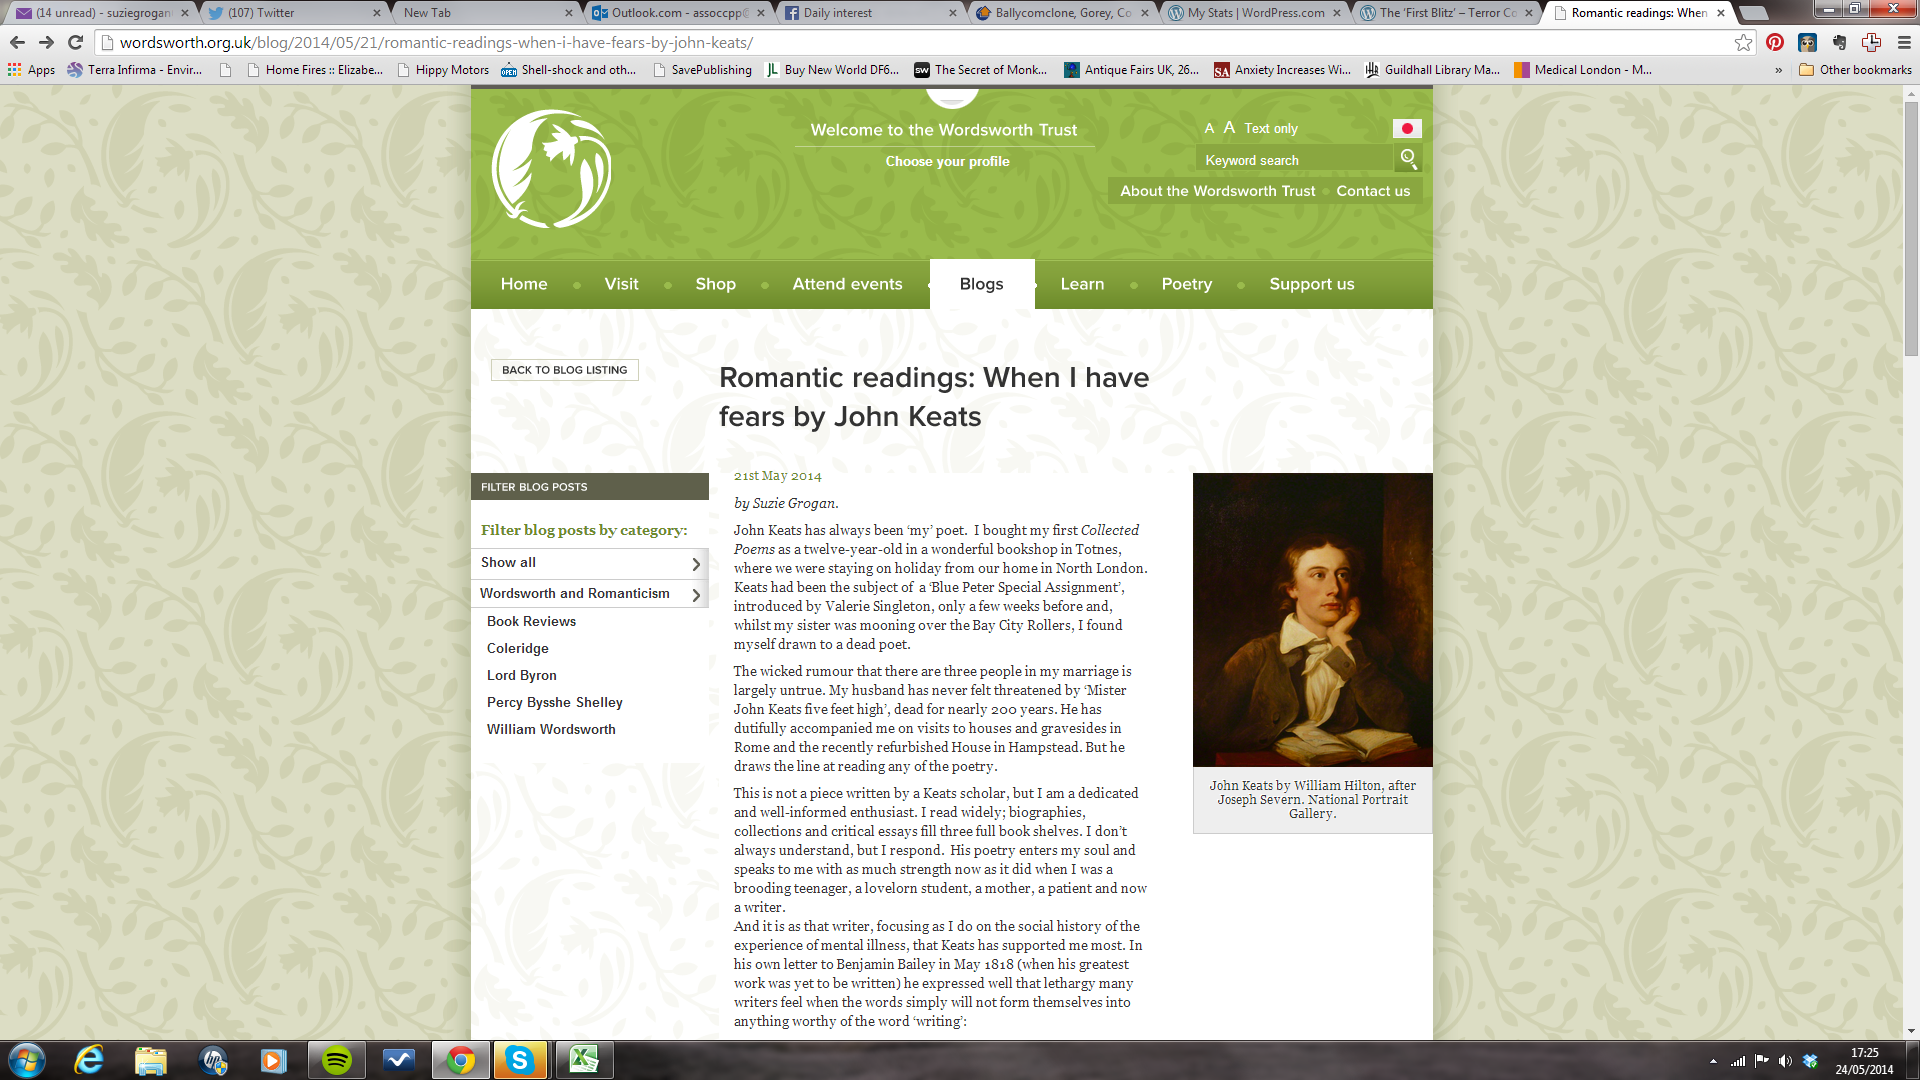 john keats no more wriggling out of writing screenshot 2014 05 24 17 25 36 2